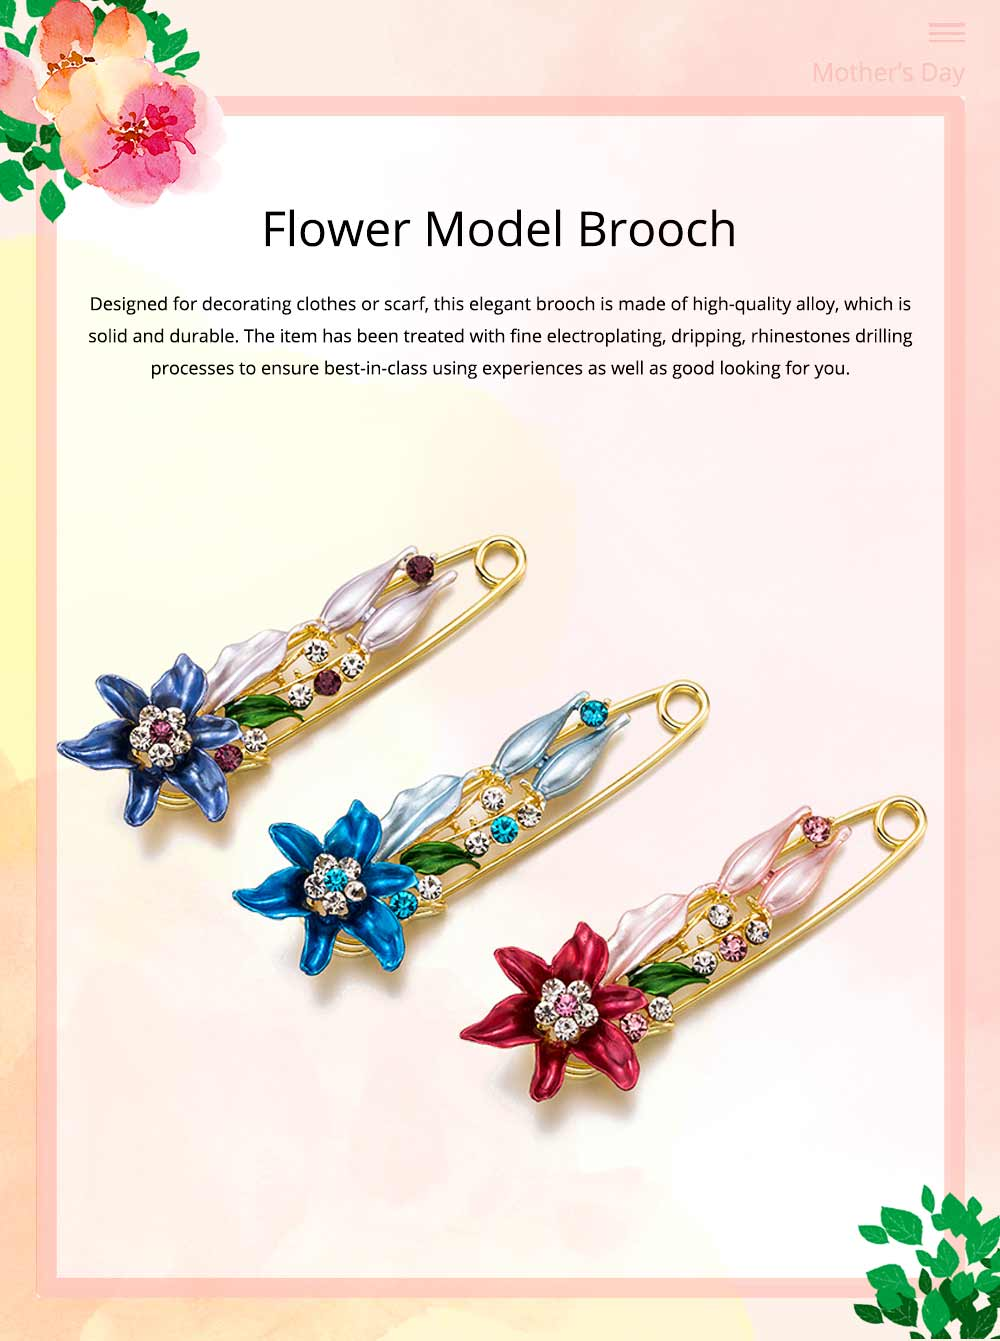 Elegant Dainty Lily Flower Dripping Alloy Breastpin for Women, Rhinestone Embellishment Bags Scarf Clothes Decoration Accessories Flower Brooch 0